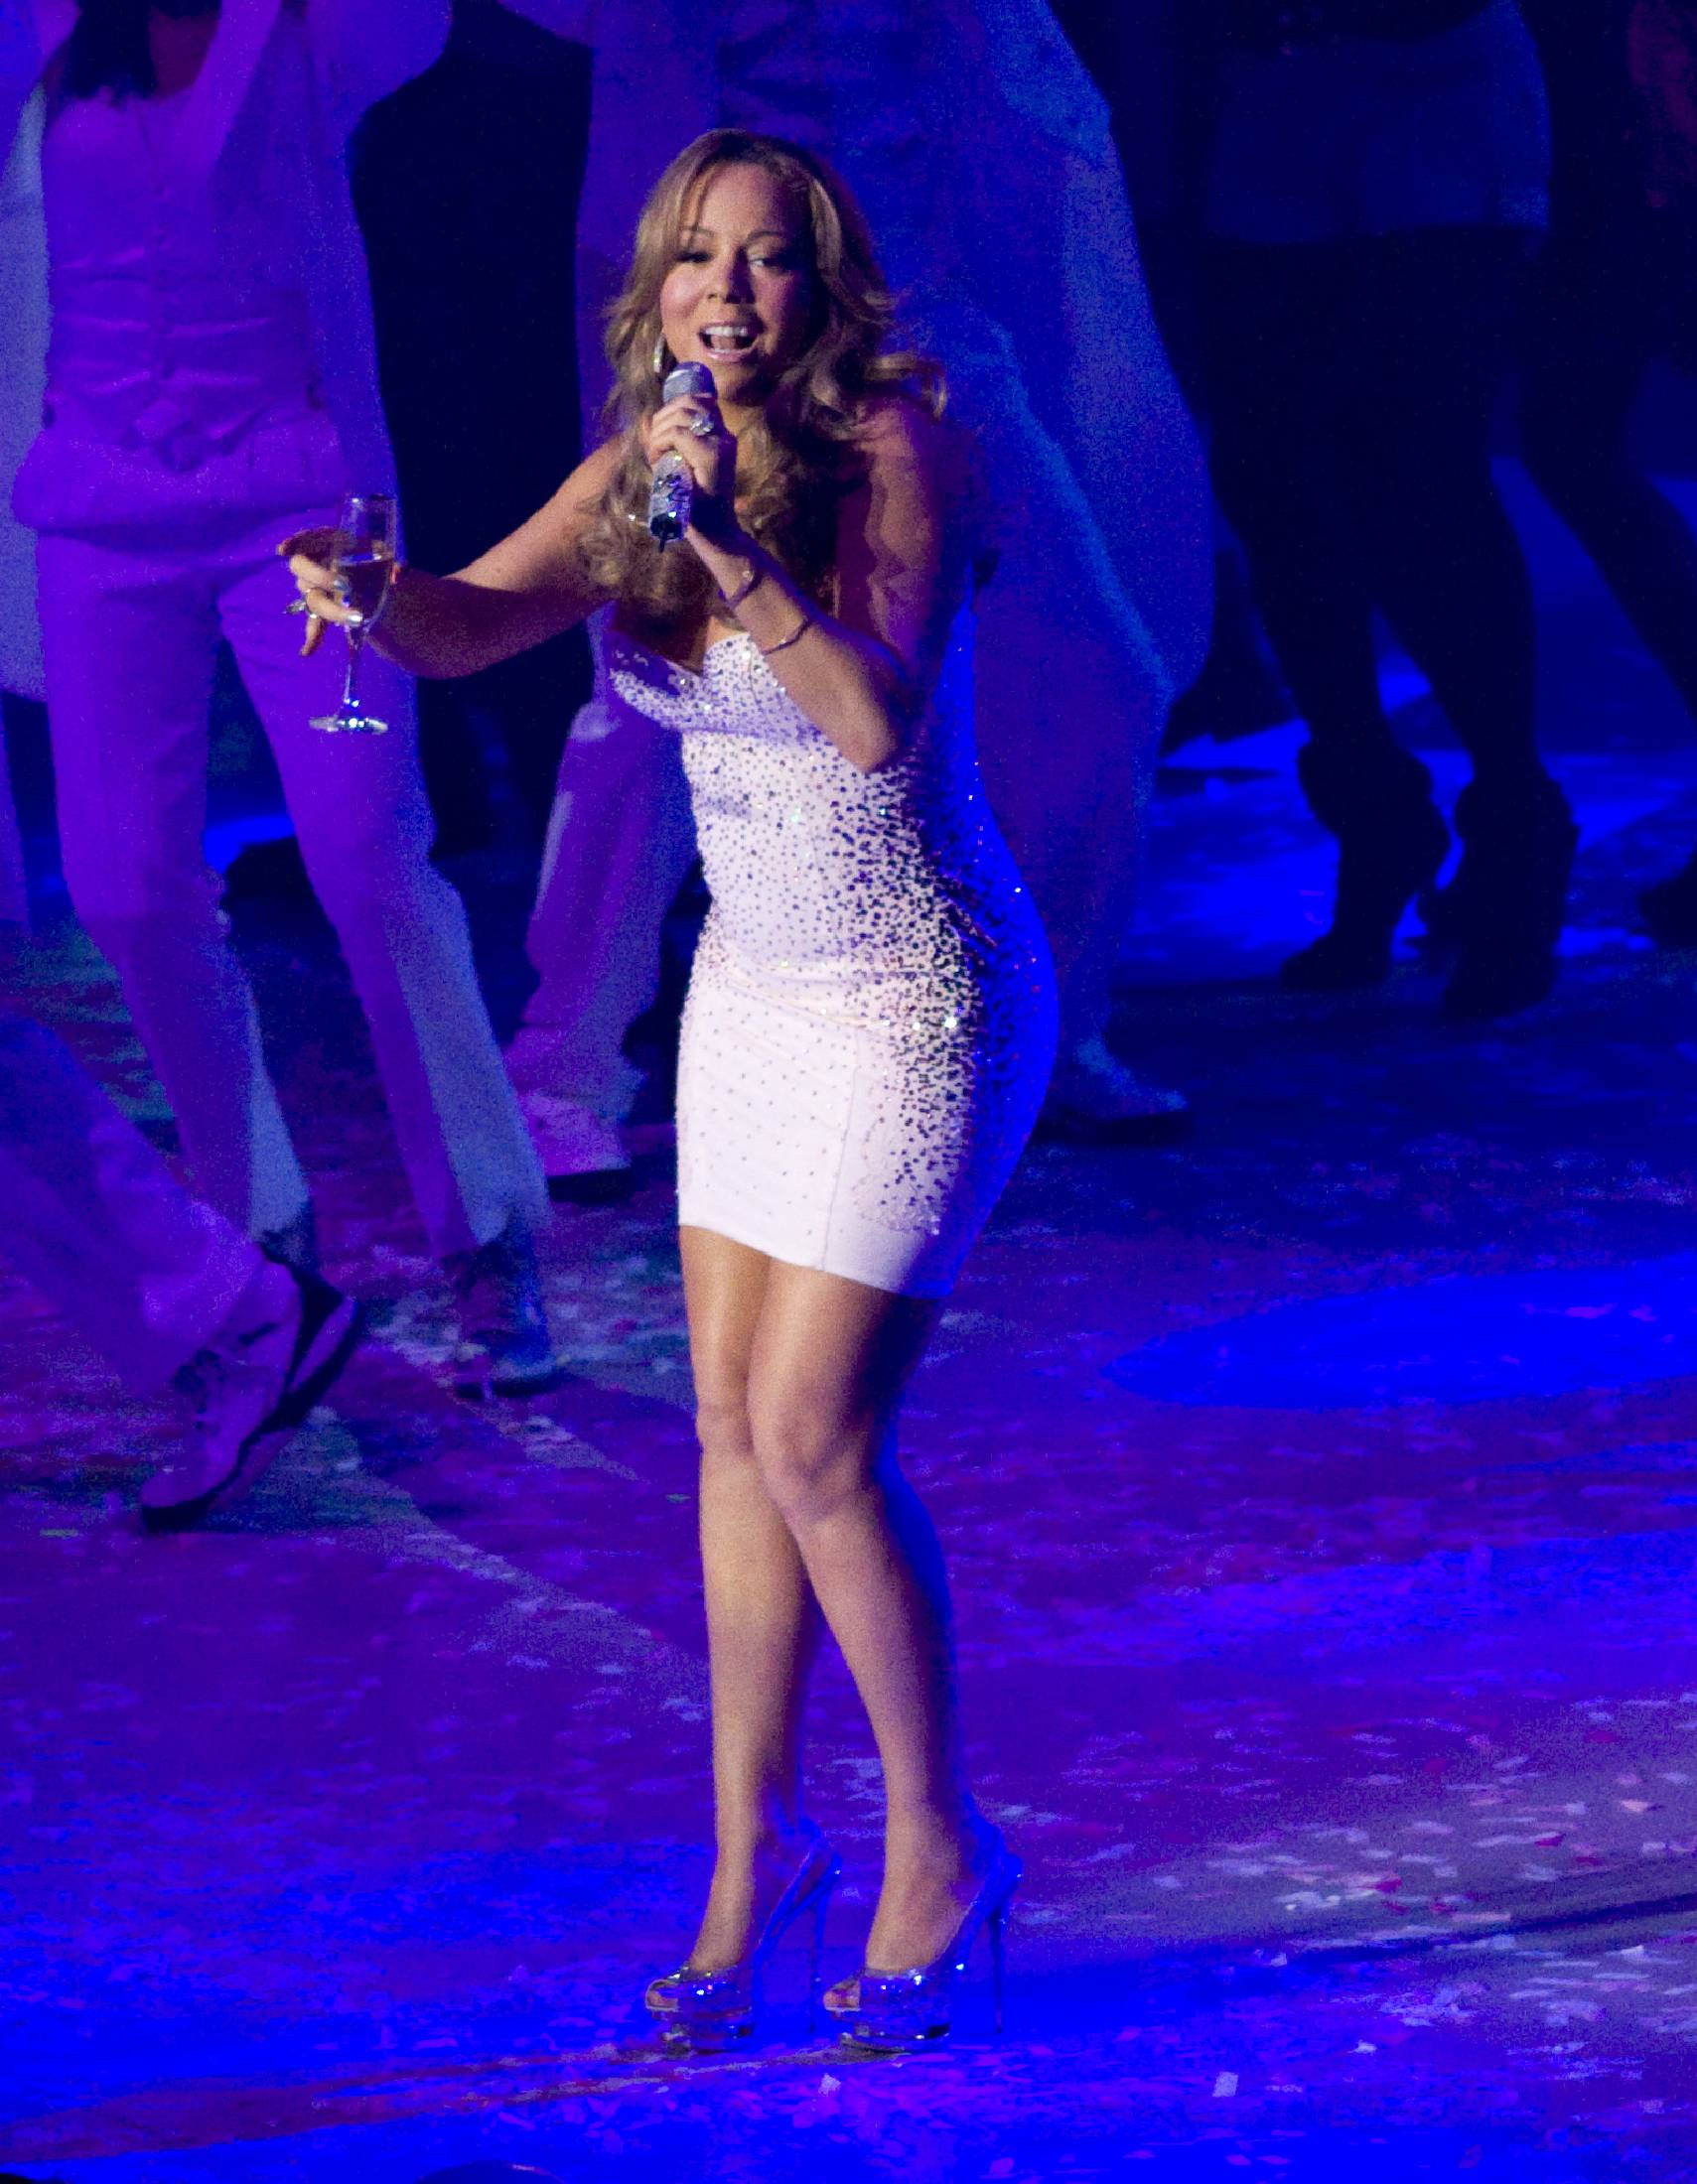 53250_Mariah_Carey_performs_at_Madison_Square_Garden_in_New_York_City-13_122_238lo.jpg